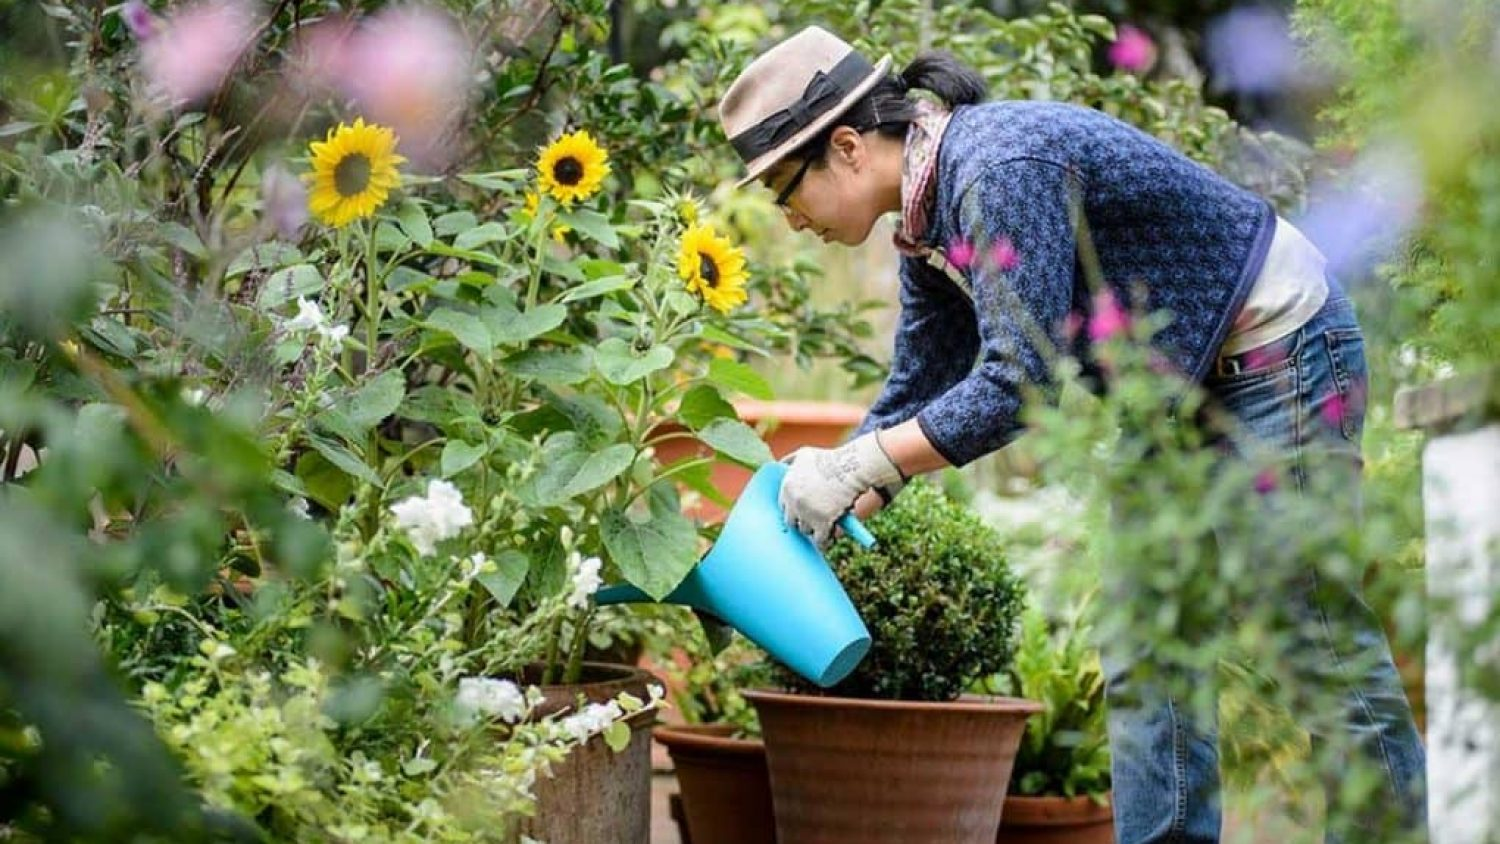 10 Common Garden Pests: How to Get Rid of Them and Have a Healthy, Thriving Garden